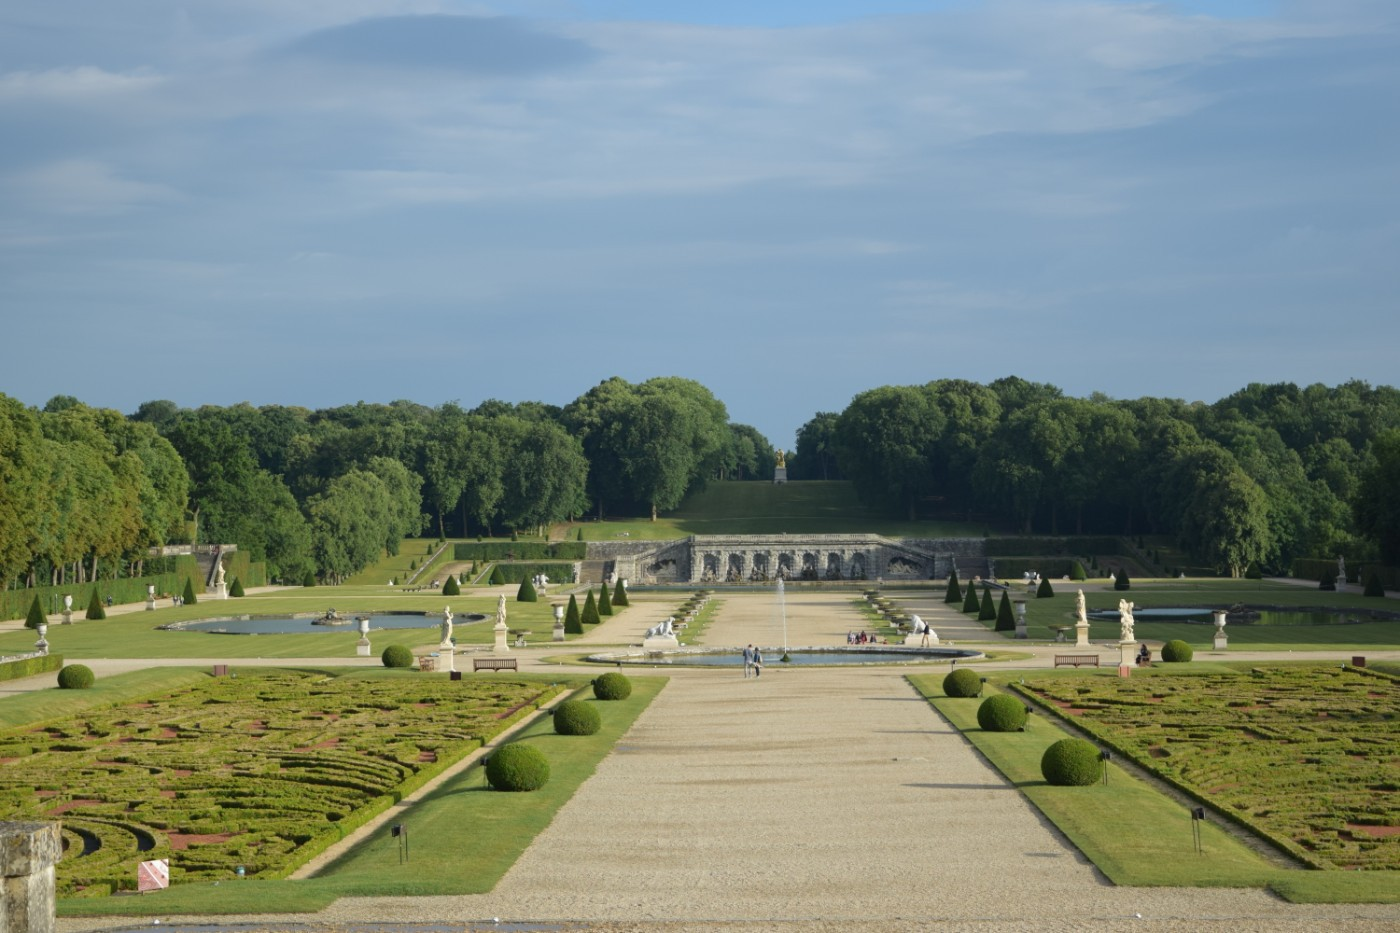 The grounds of the Château de Vaux-le-Vicomte (parterres, basins, grotto, statues) on a summer night.